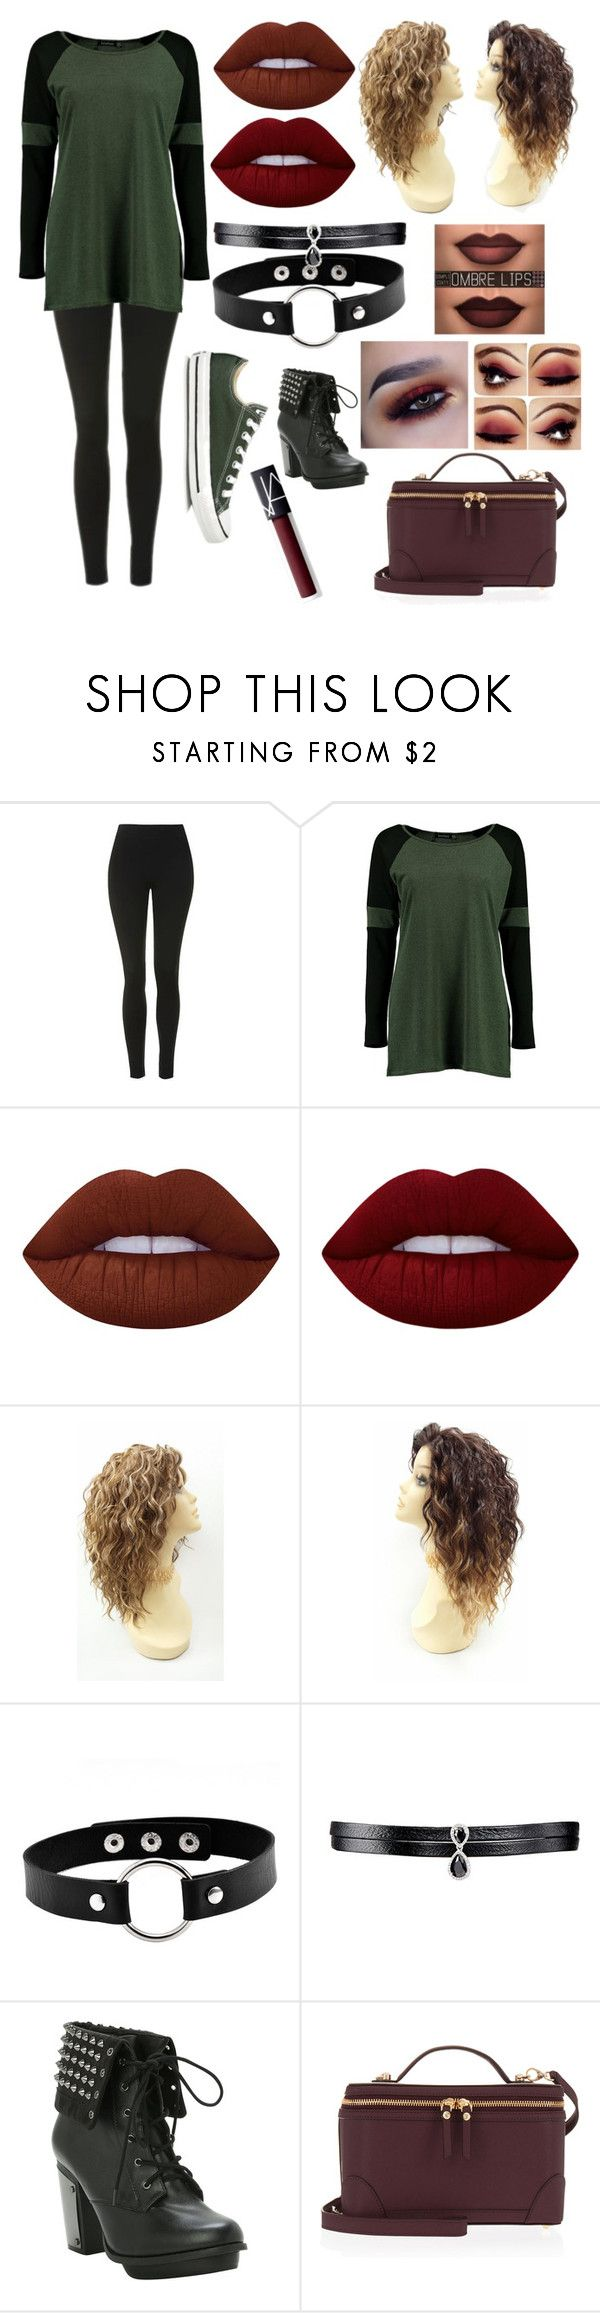 """""""burgundy & army green"""" by kassandra-cdxv on Polyvore featuring Topshop, Boohoo, Converse, Lime Crime, Fallon, Henri Bendel and NARS Cosmetics"""